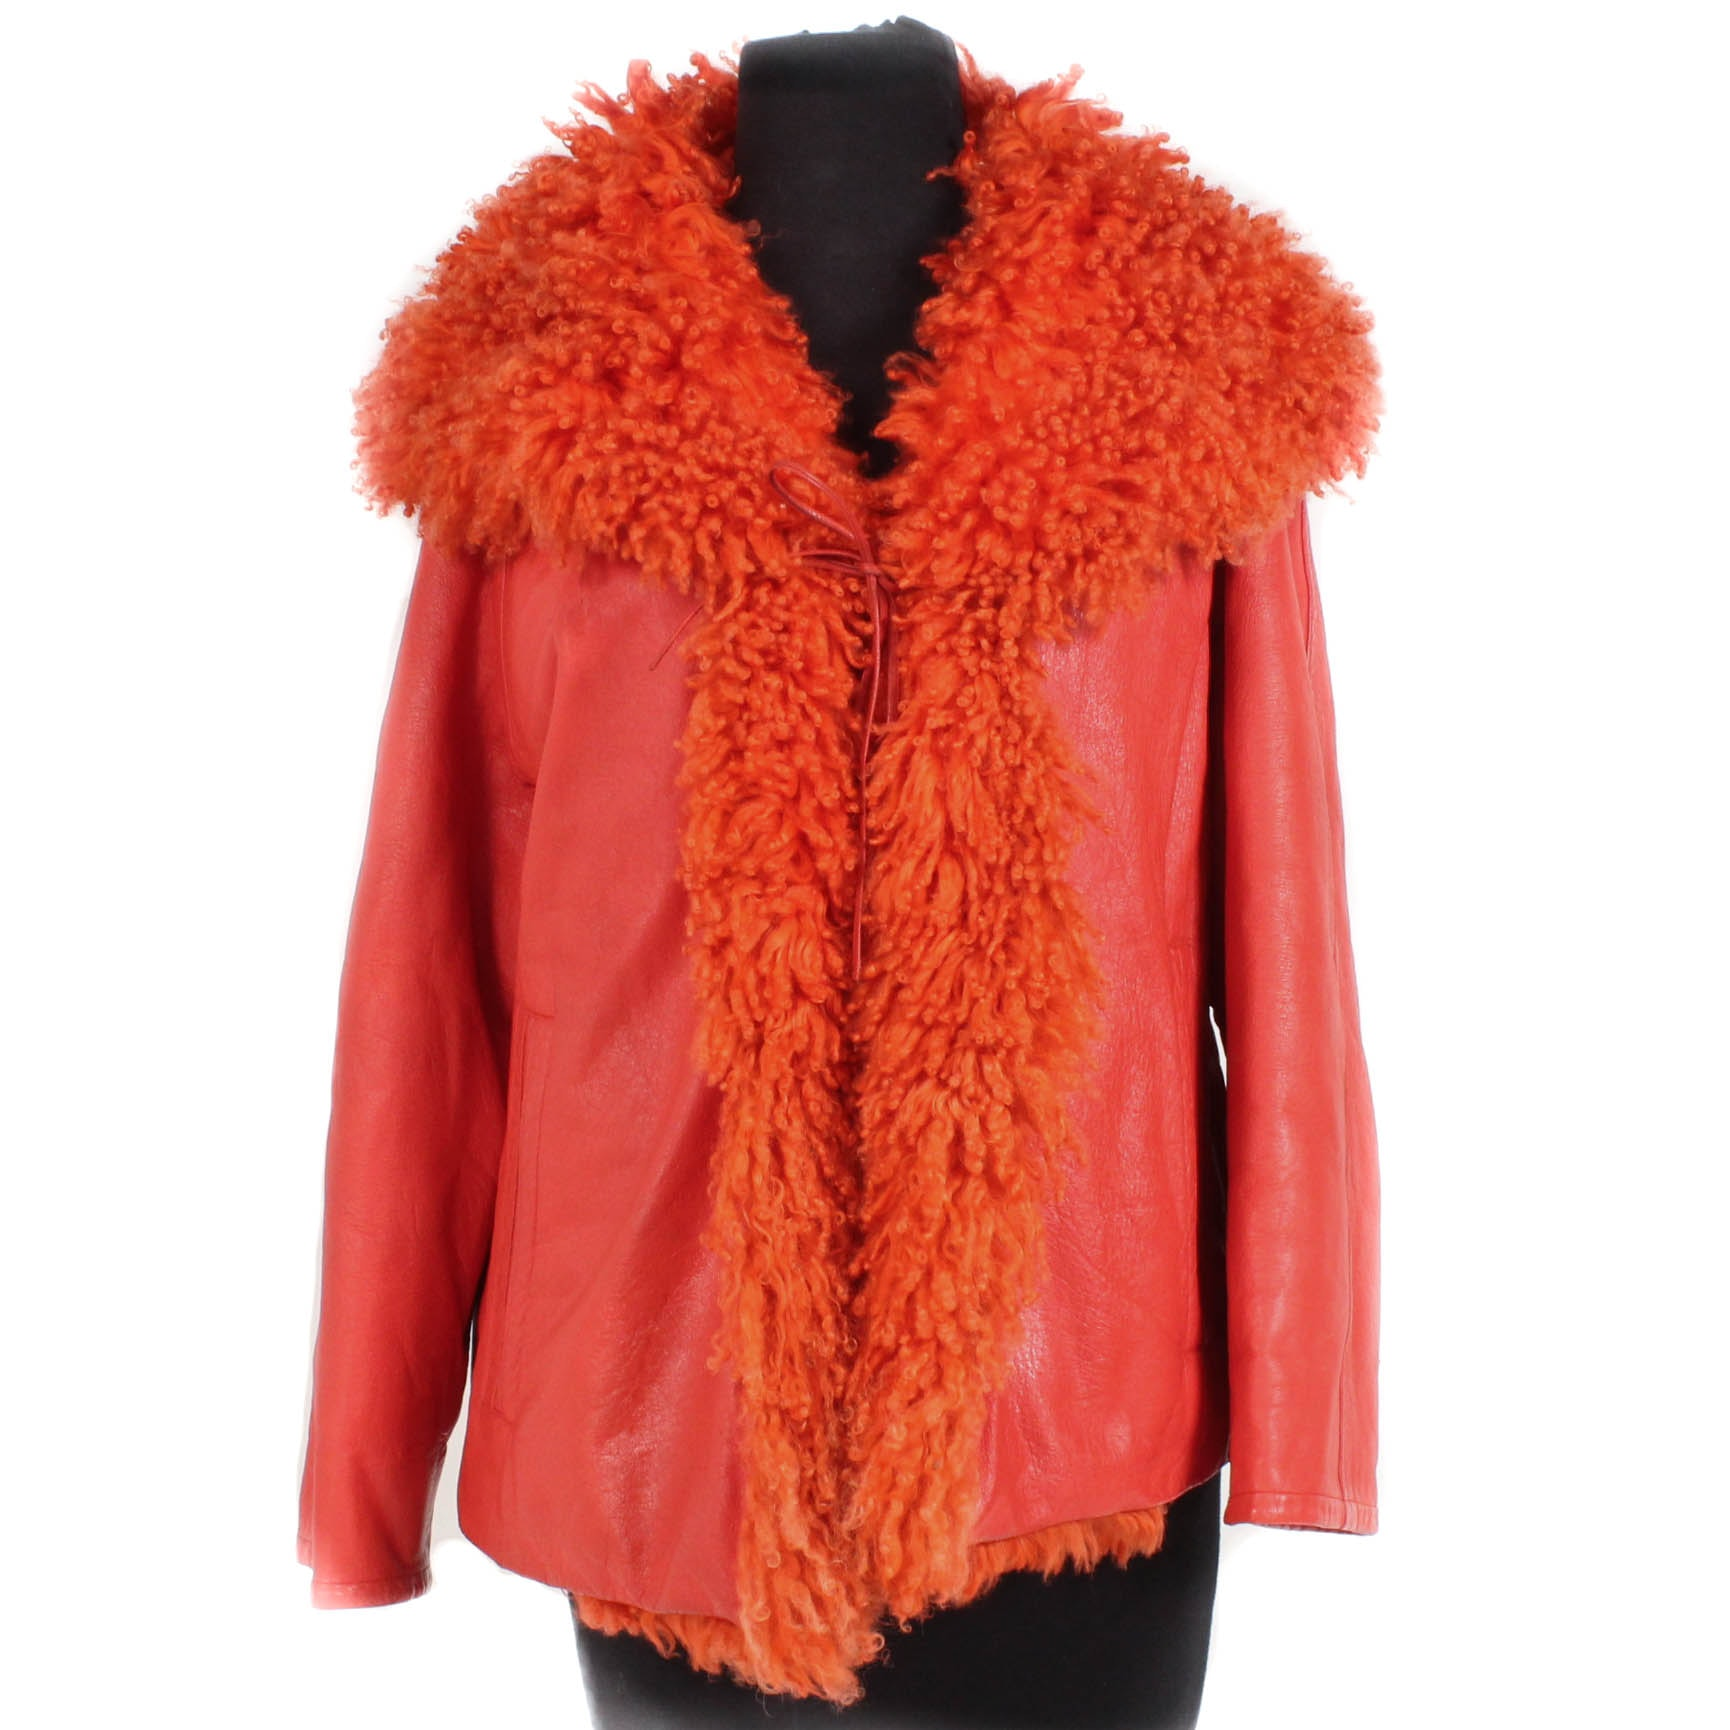 Vintage Bonnie Cashin Designs Orange Leather Mongolian Lamb Fur Jacket